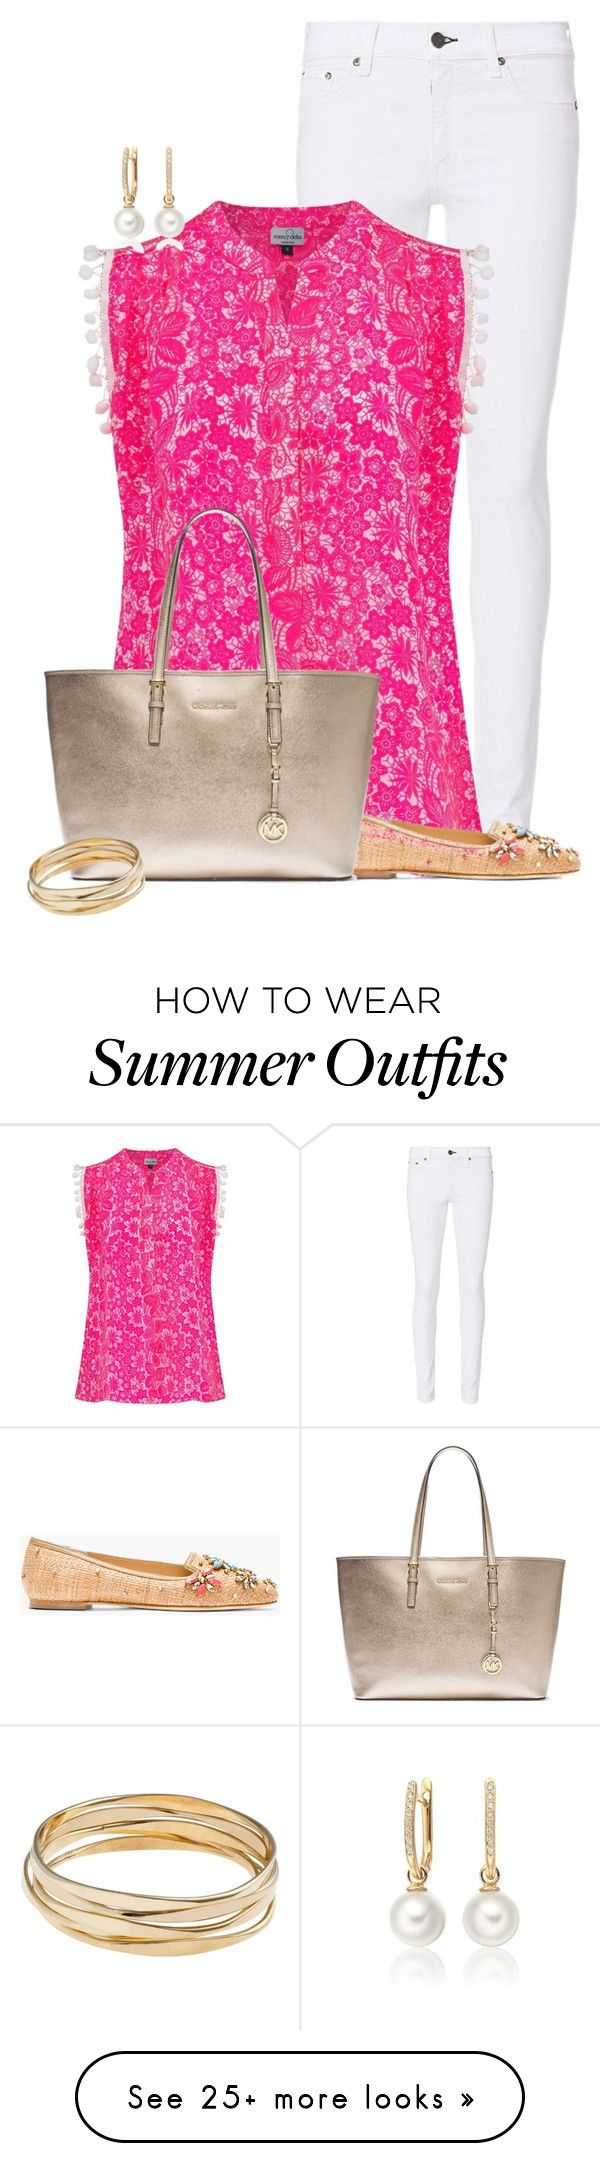 """""""Easy Summer Pom Style"""" by kginger on Polyvore featuring rag & bone, Mercy Delta, Dolce&Gabbana, MICHAEL Michael Kors and John Lewis"""